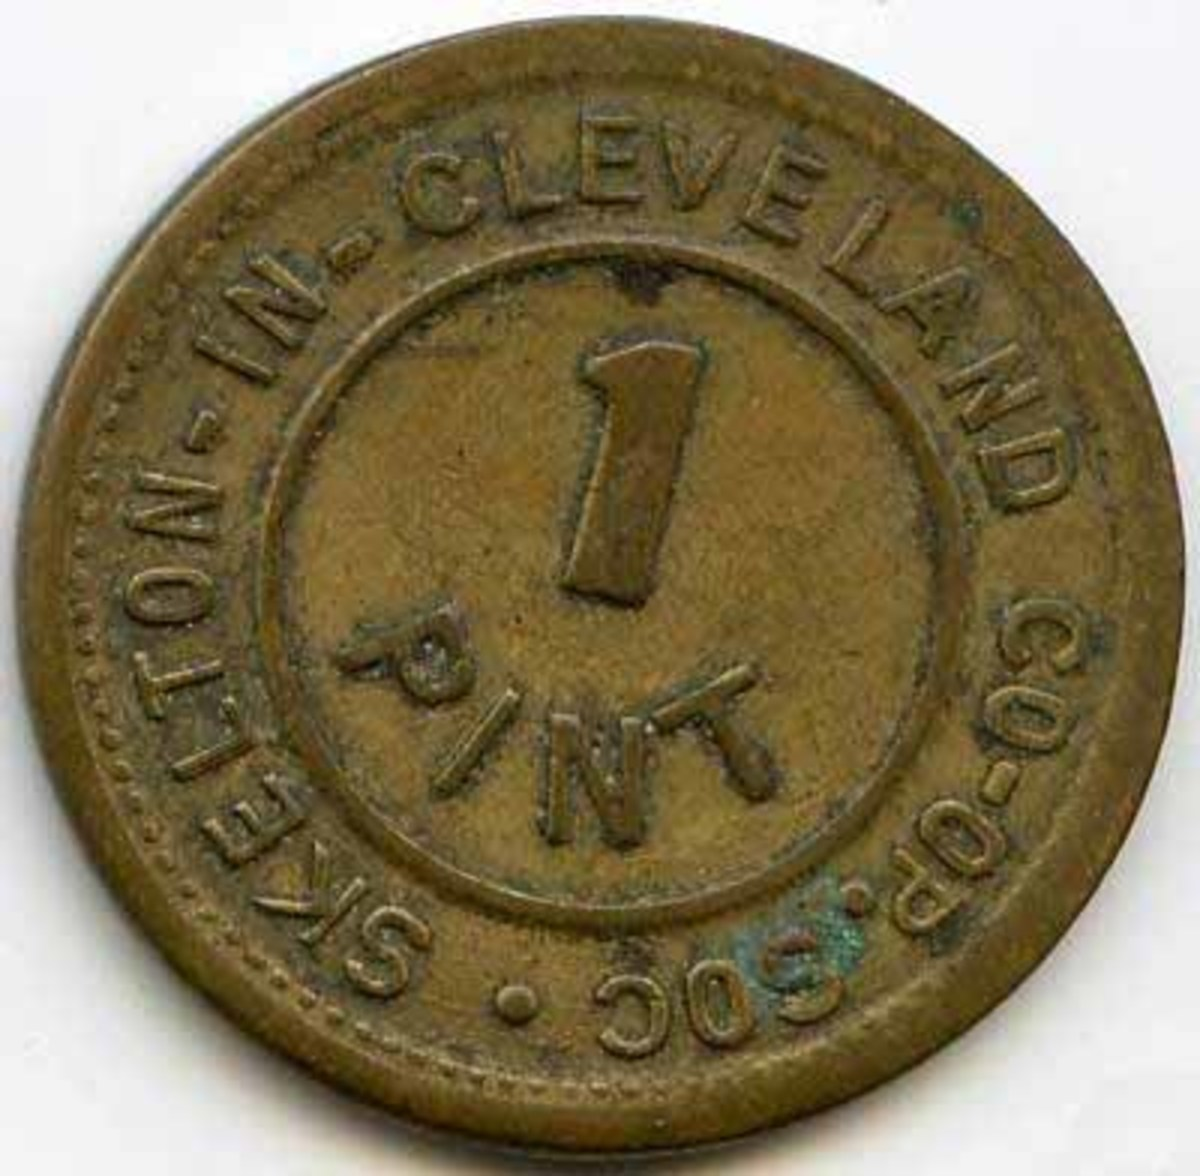 Skelton Co-operative Society milk token